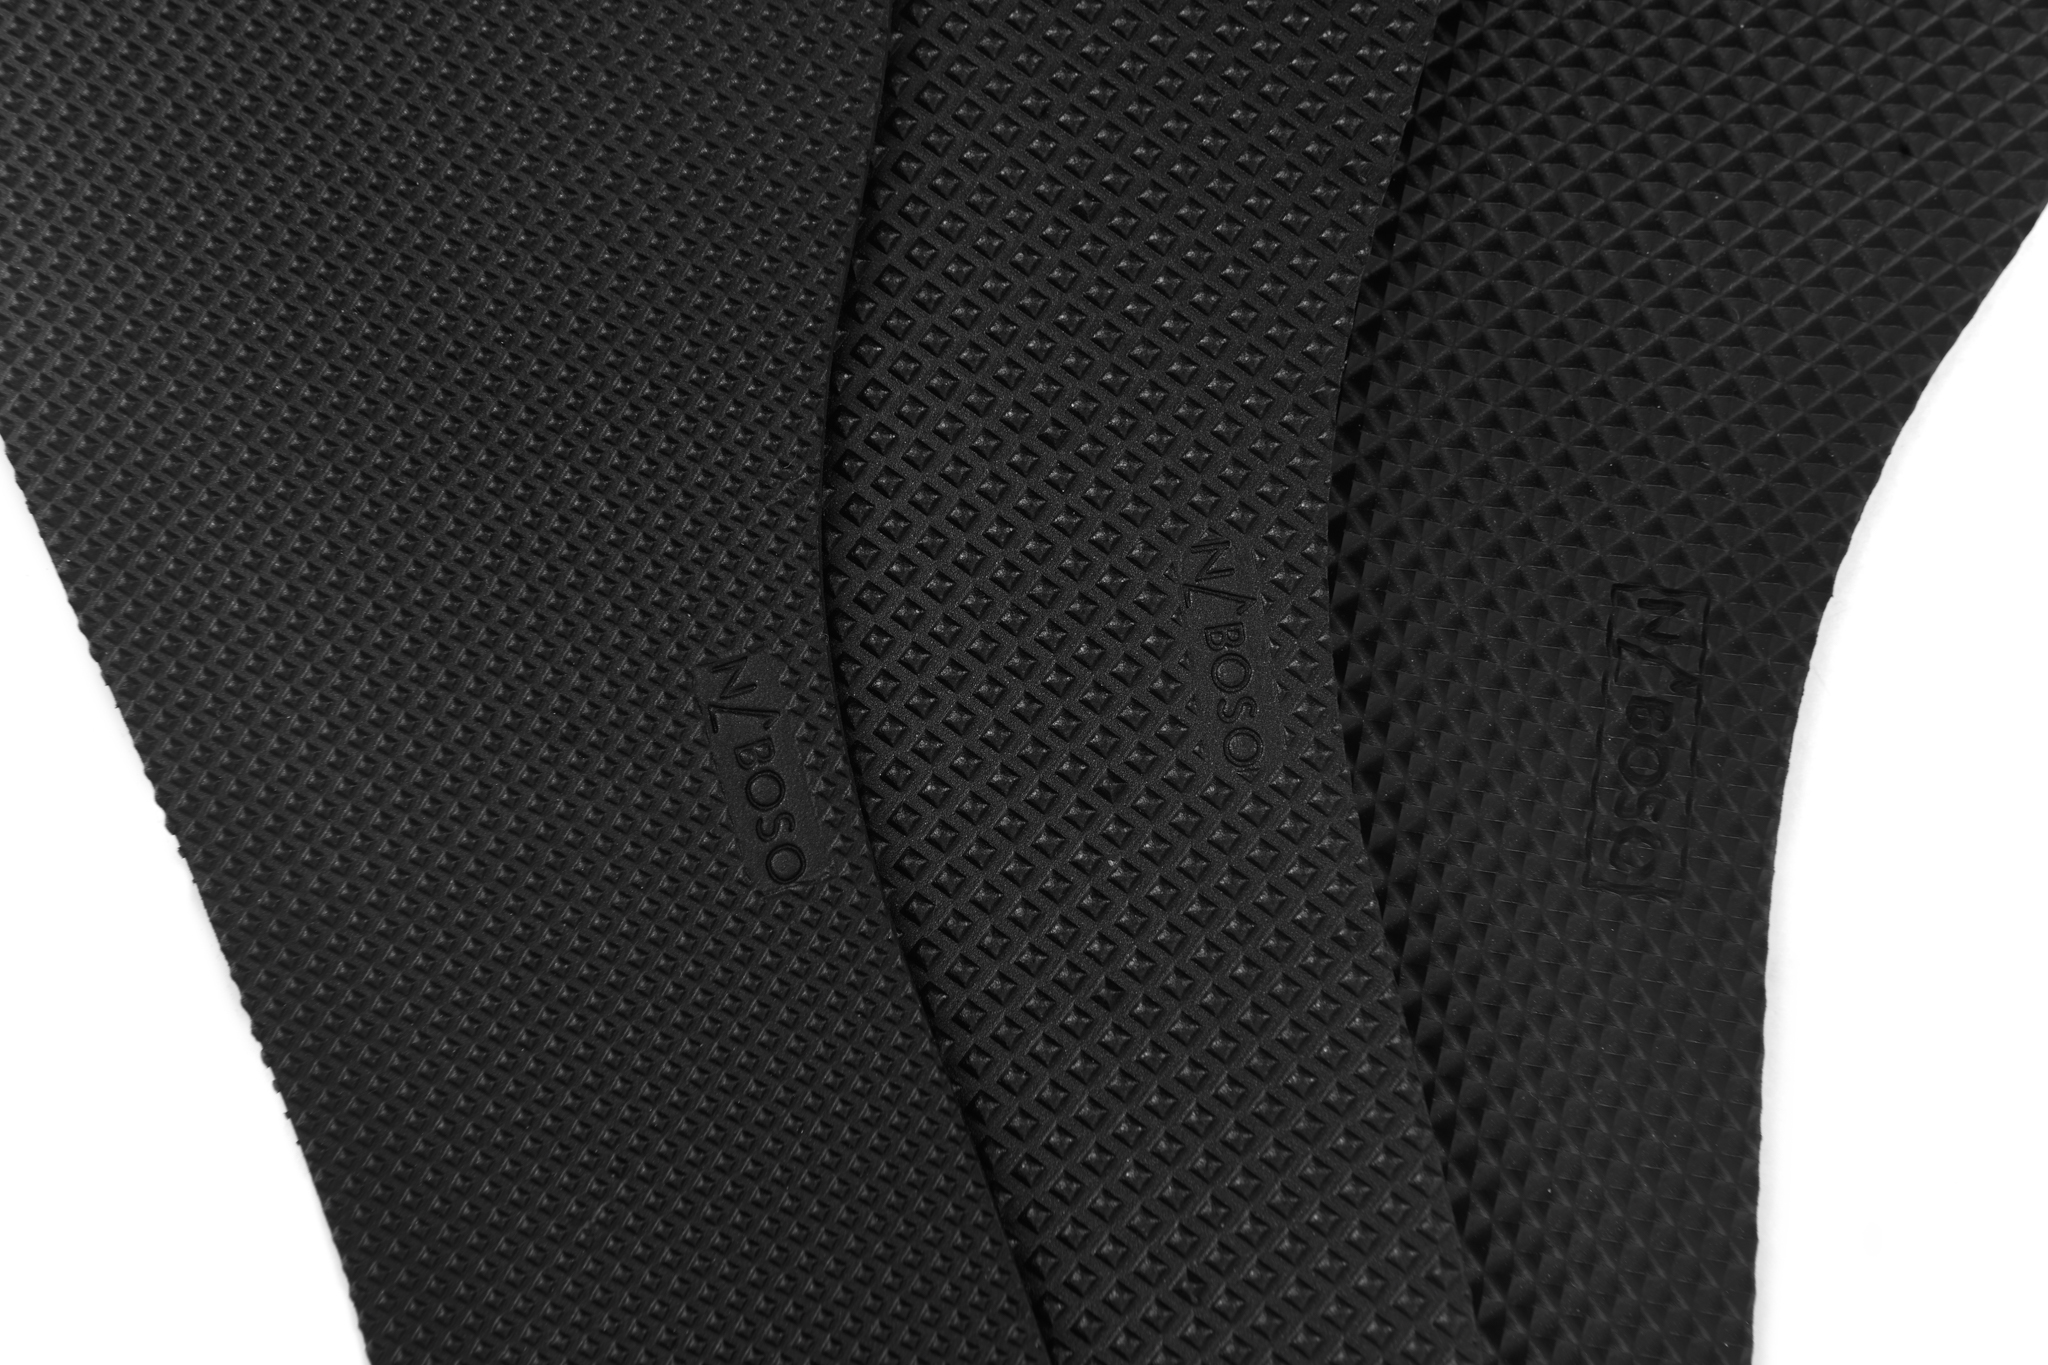 Naboso Insoles Texture 3